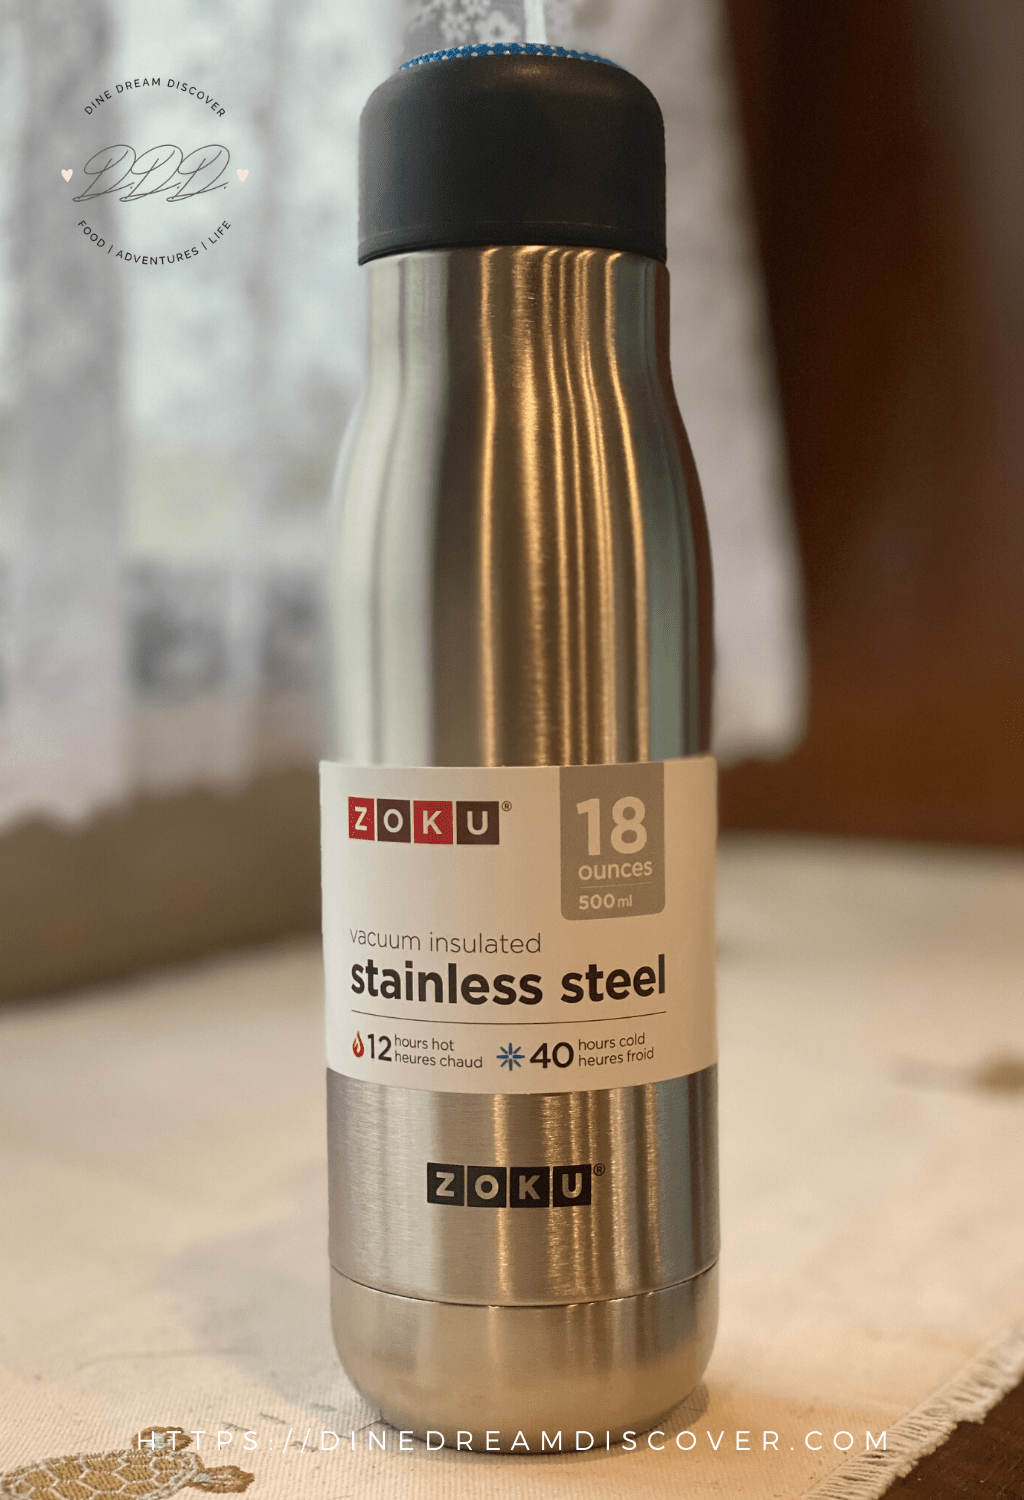 ZOKU 18 oz Stainless Steel Bottle